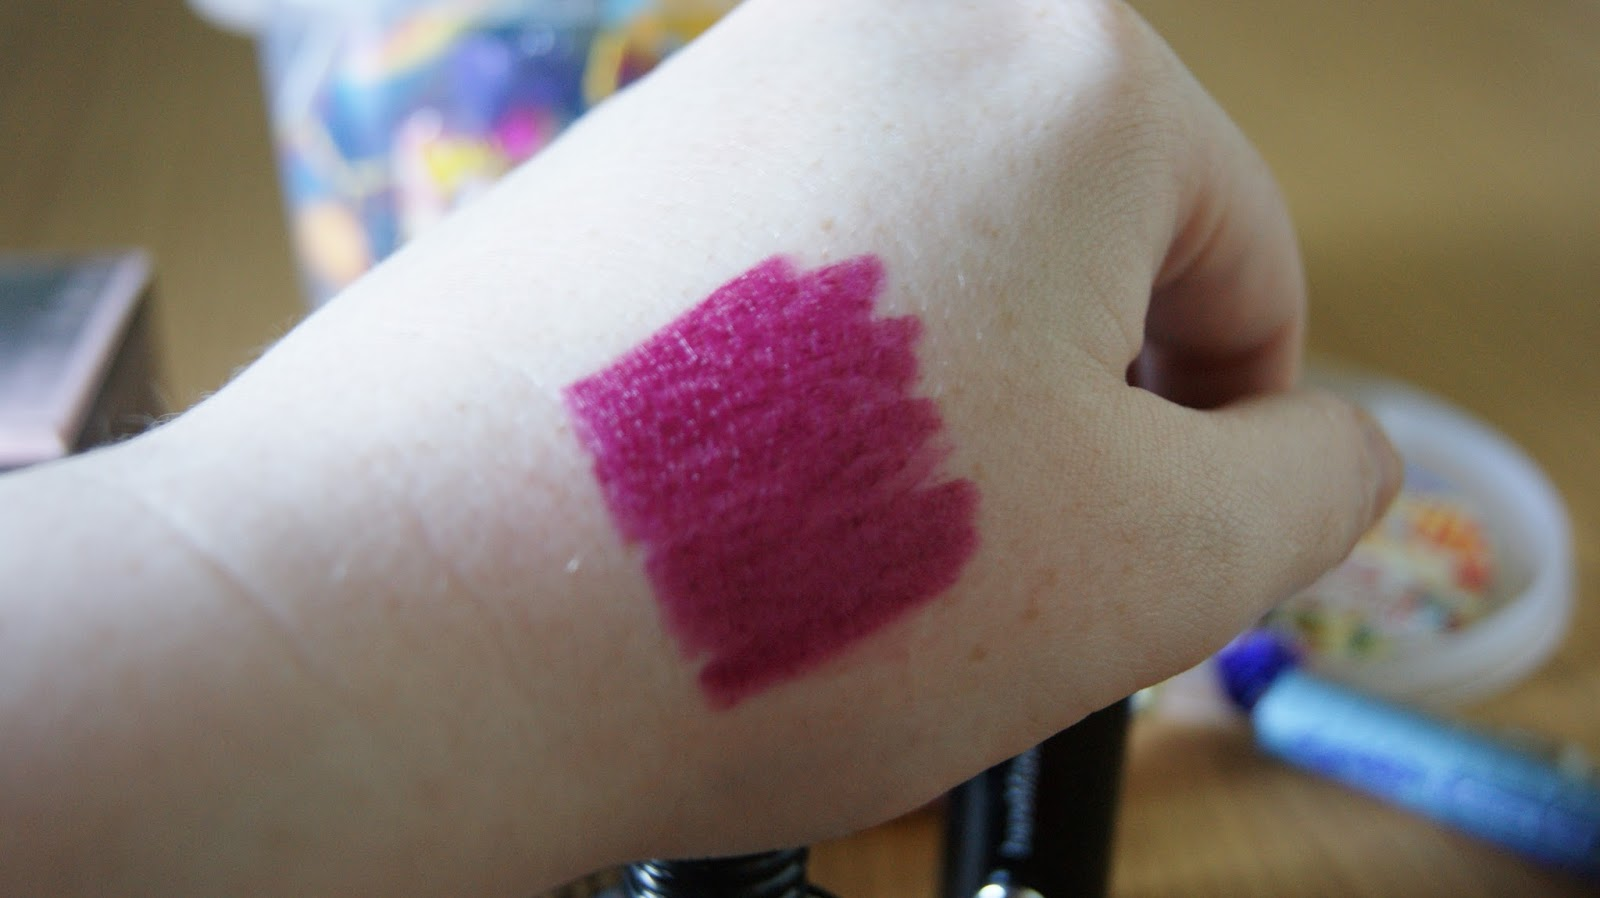 Bare Minerals Marvelous Moxie Lipstick in Lead The Way Swatch